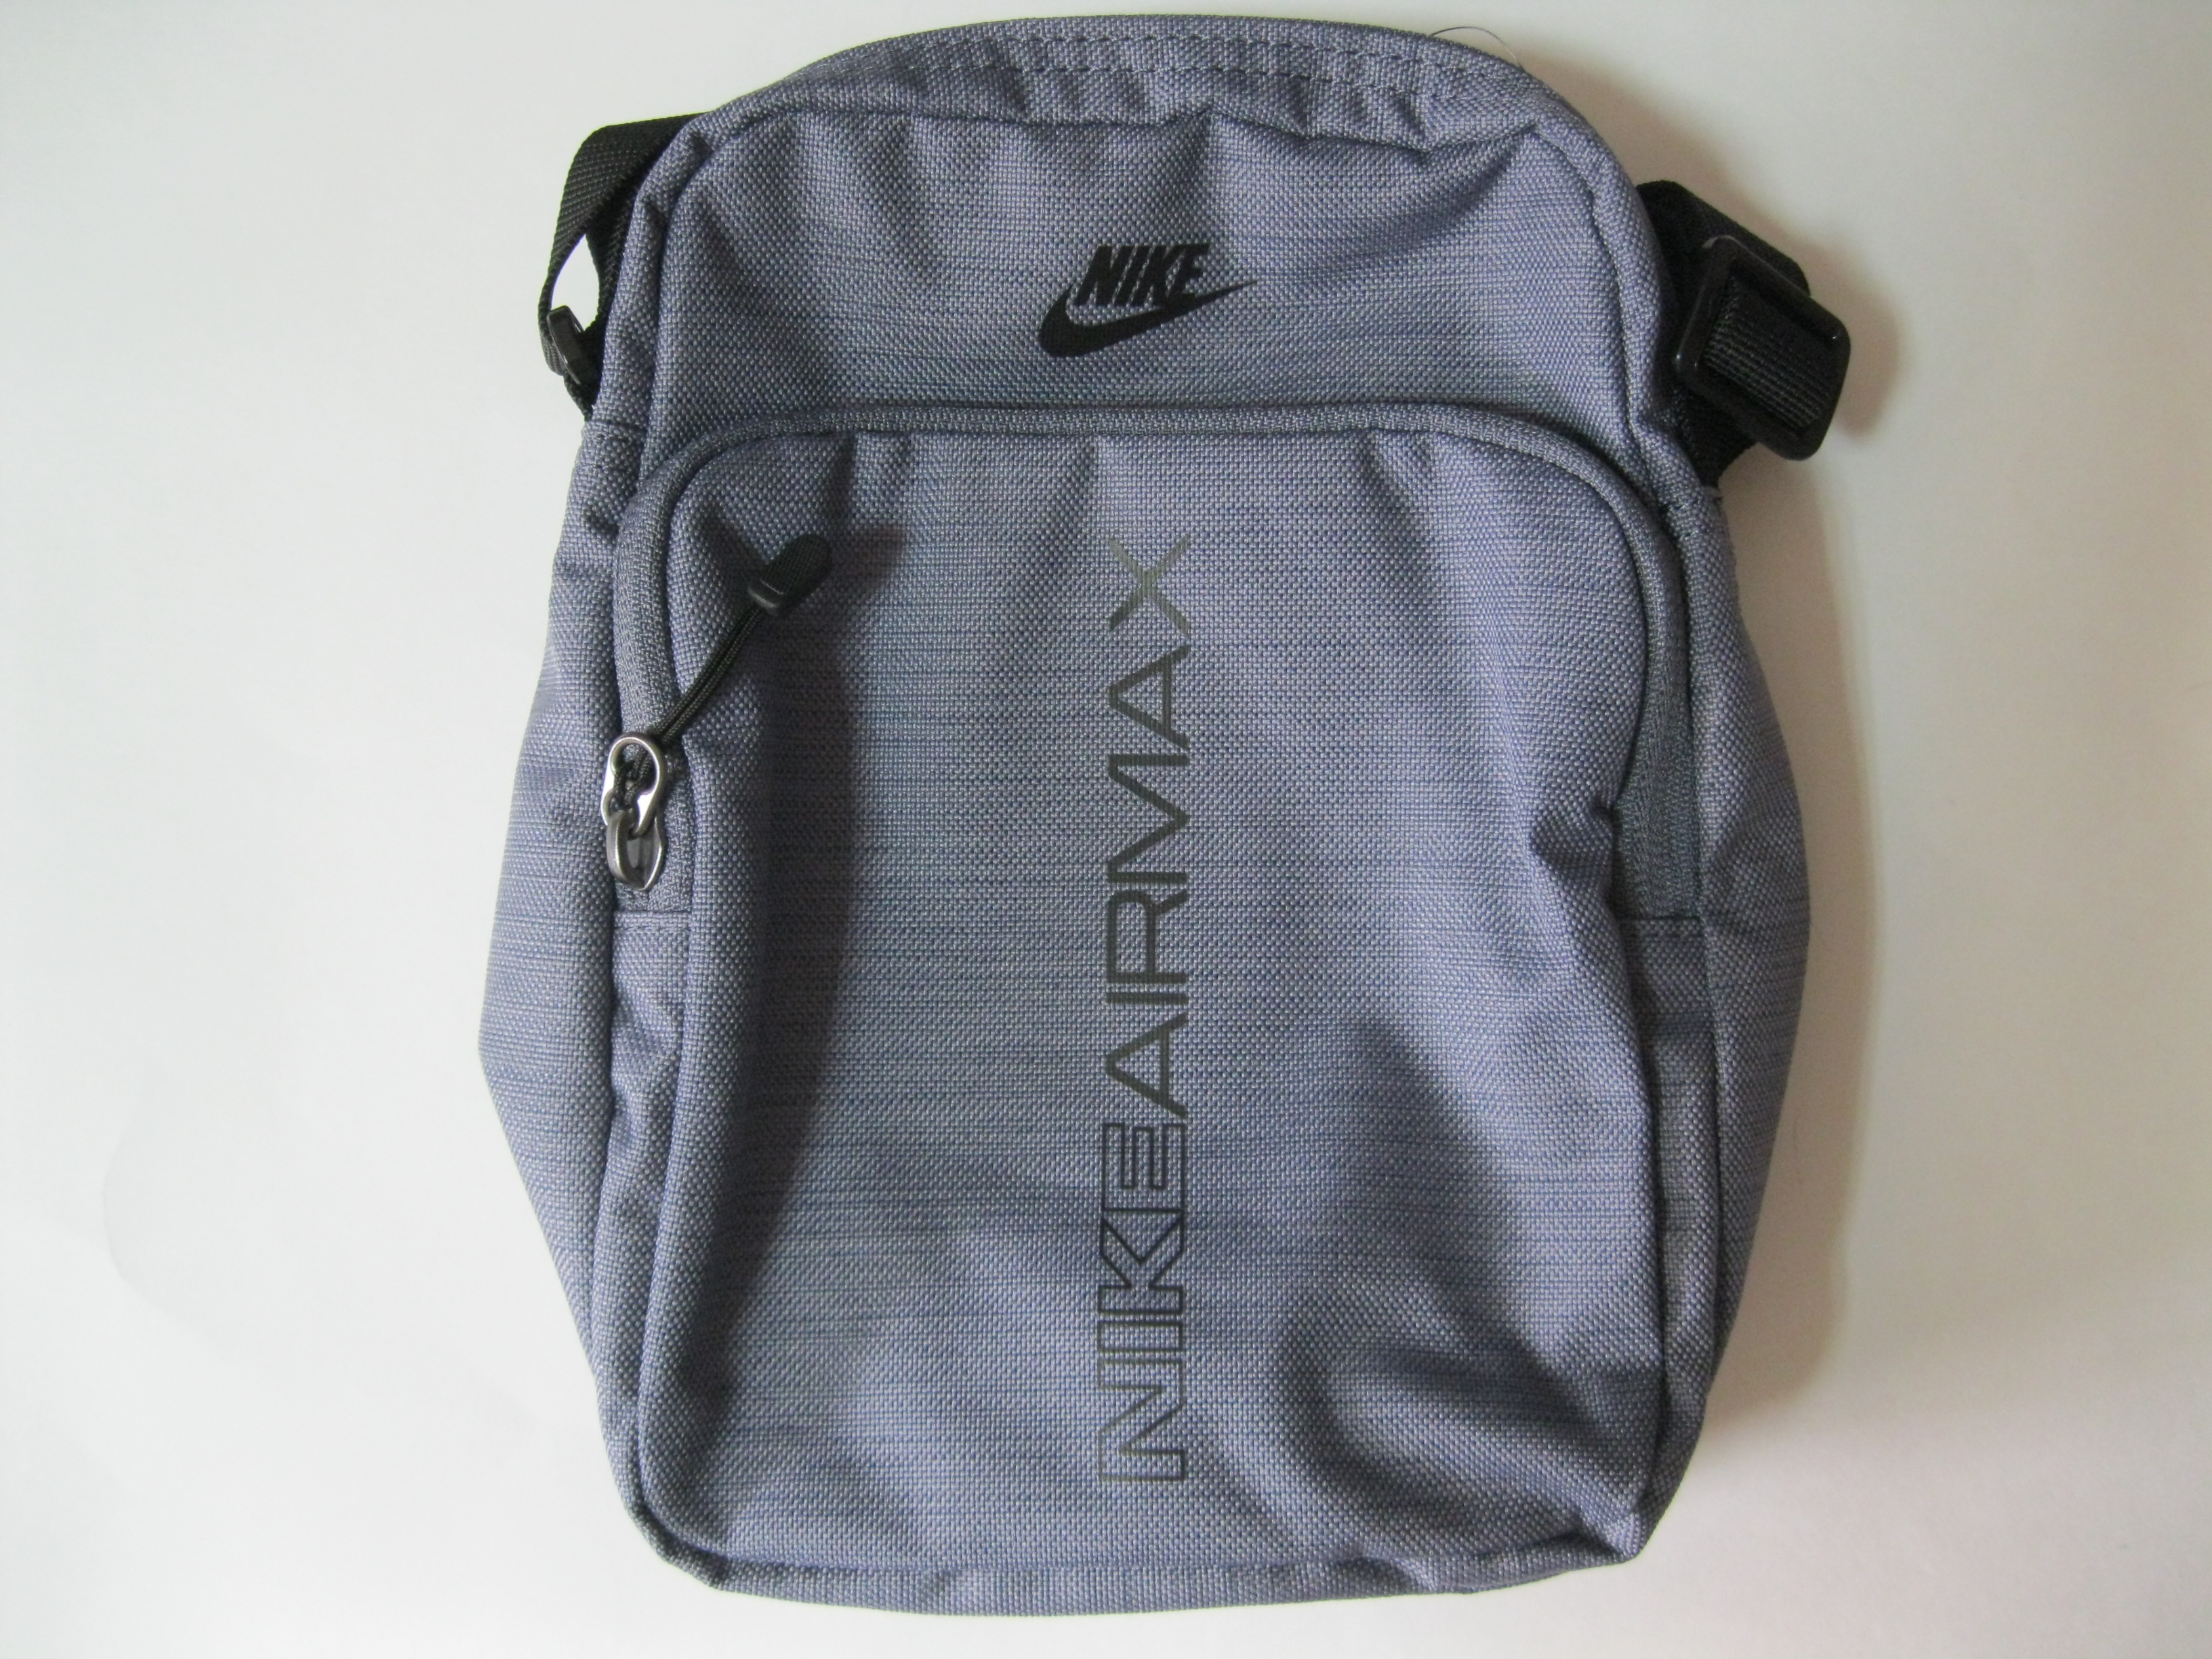 35ea29d208e5ee Nike Air Max Small Items Messenger Bag Gray Size one size - Bags   Luggage  for Sale - Grailed